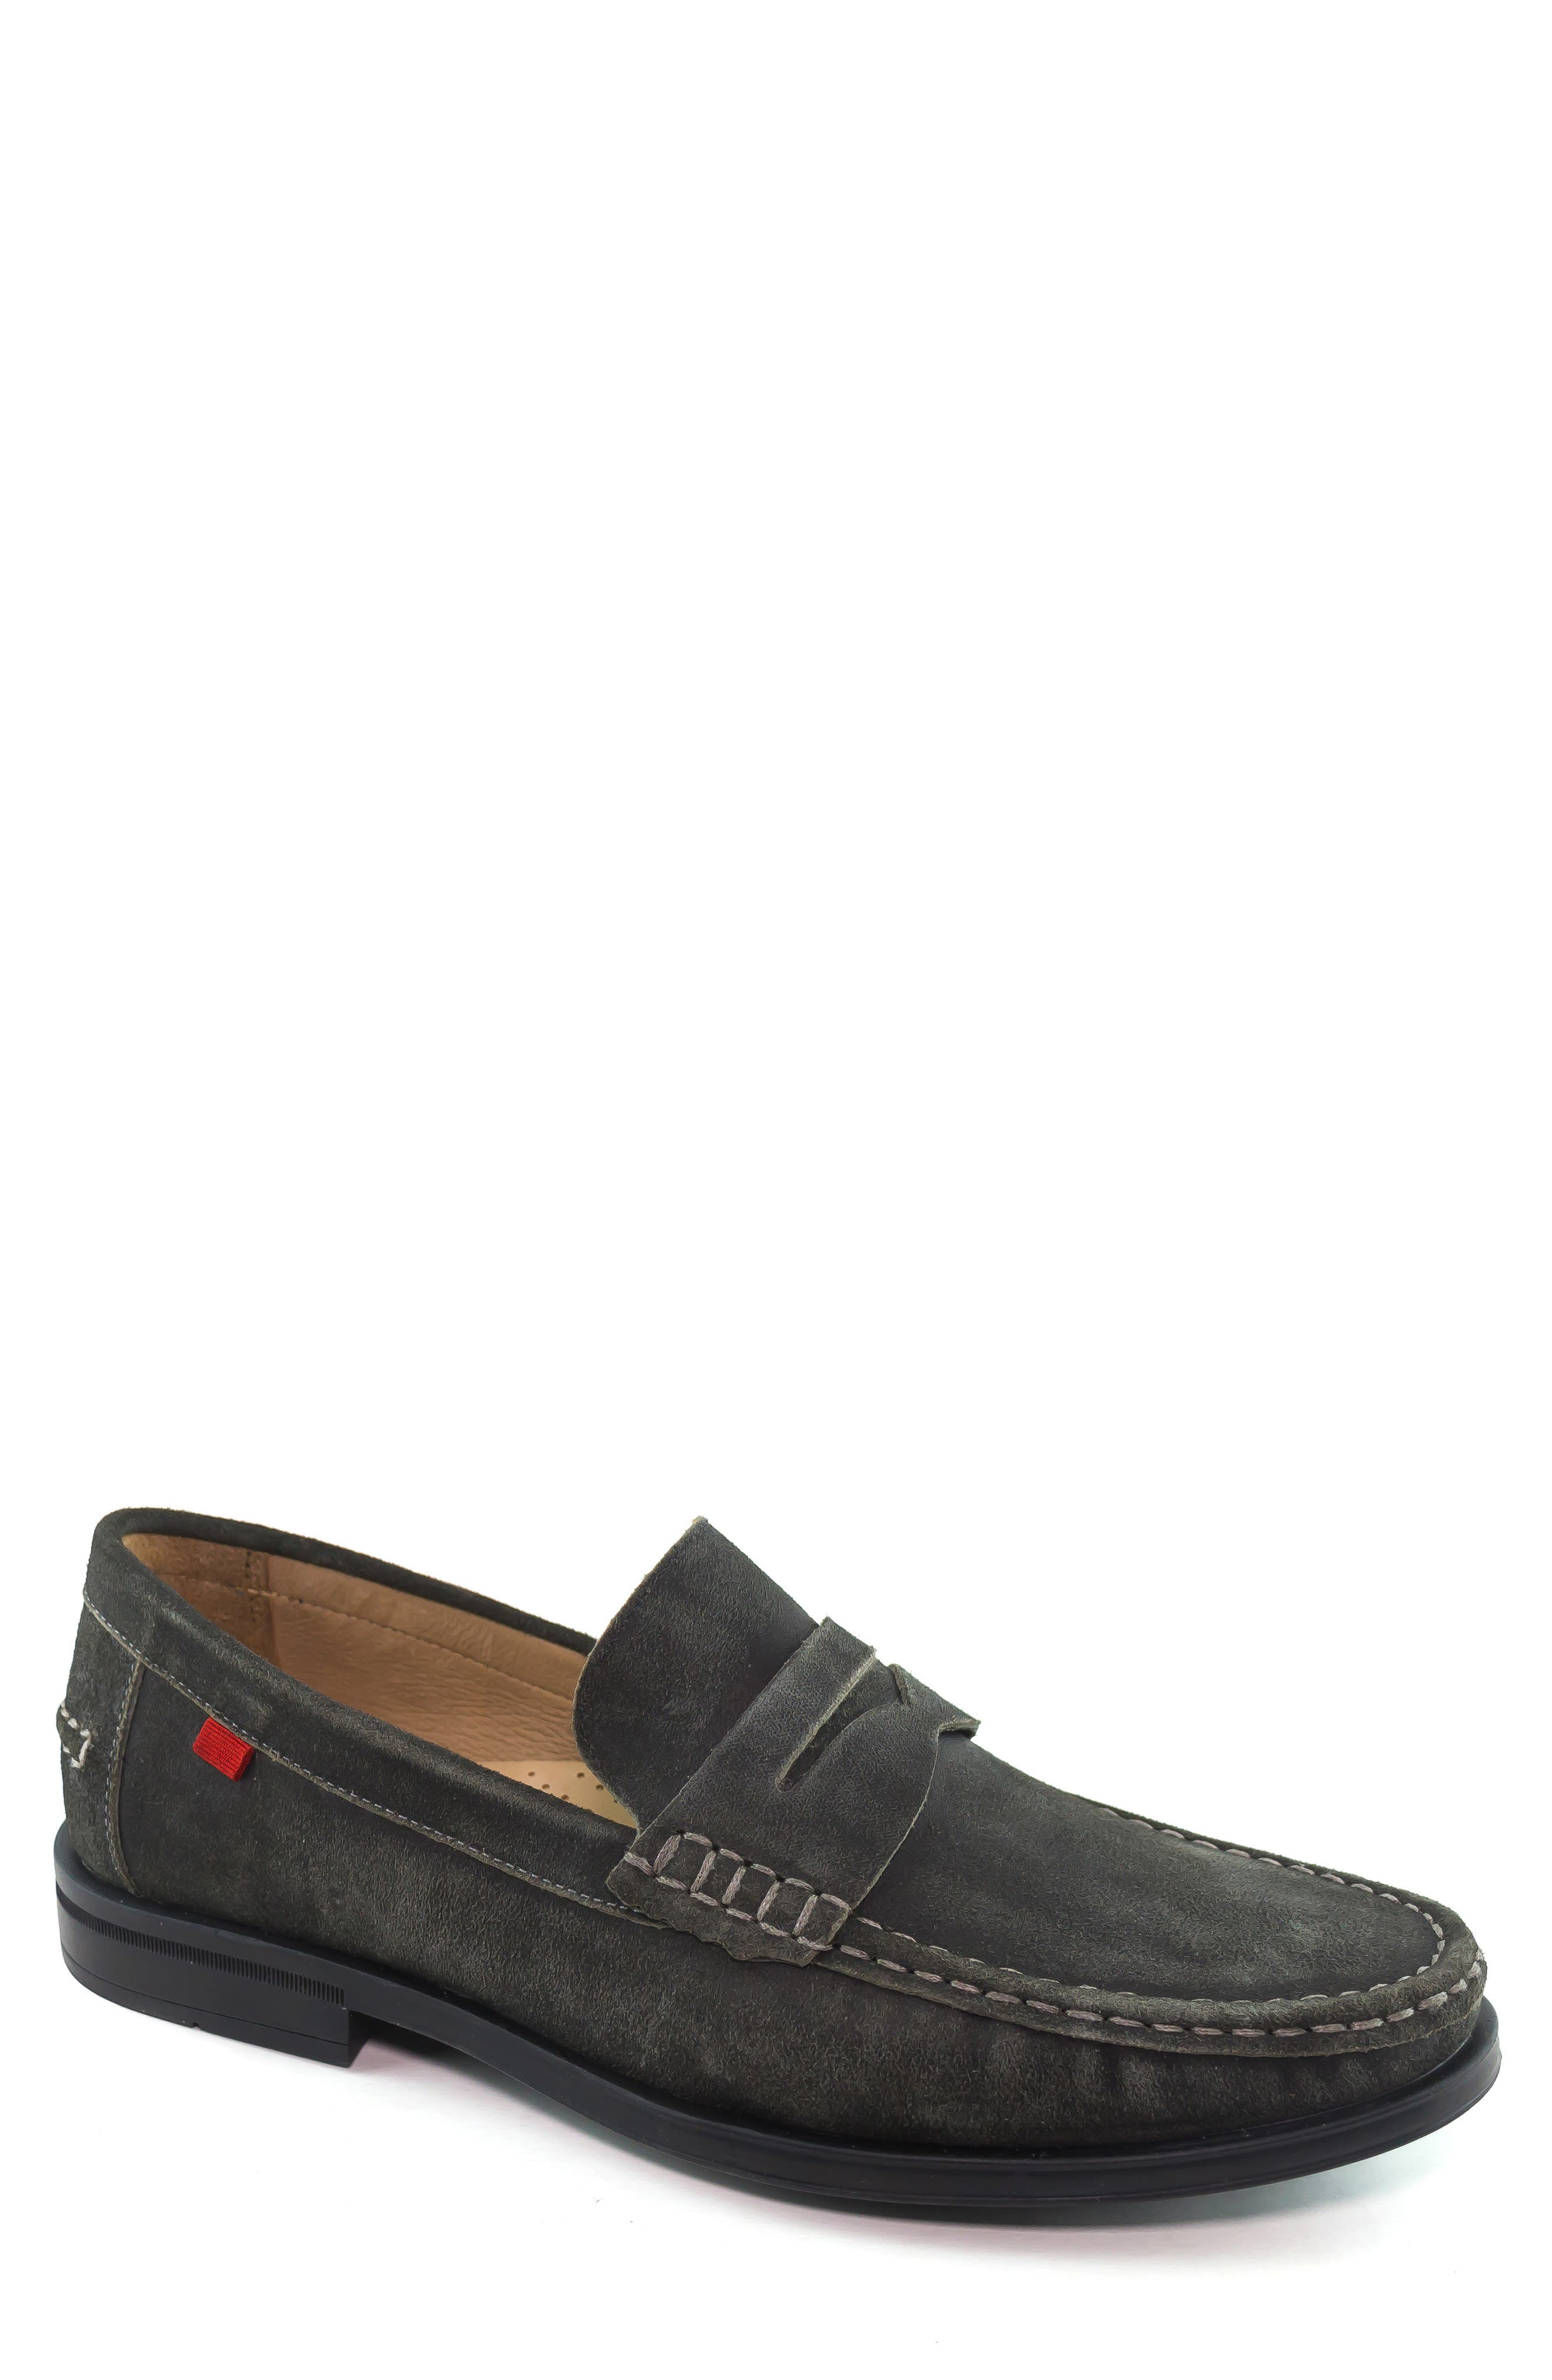 Cortland Penny Loafer,                             Main thumbnail 1, color,                             GRAPHITE LEATHER